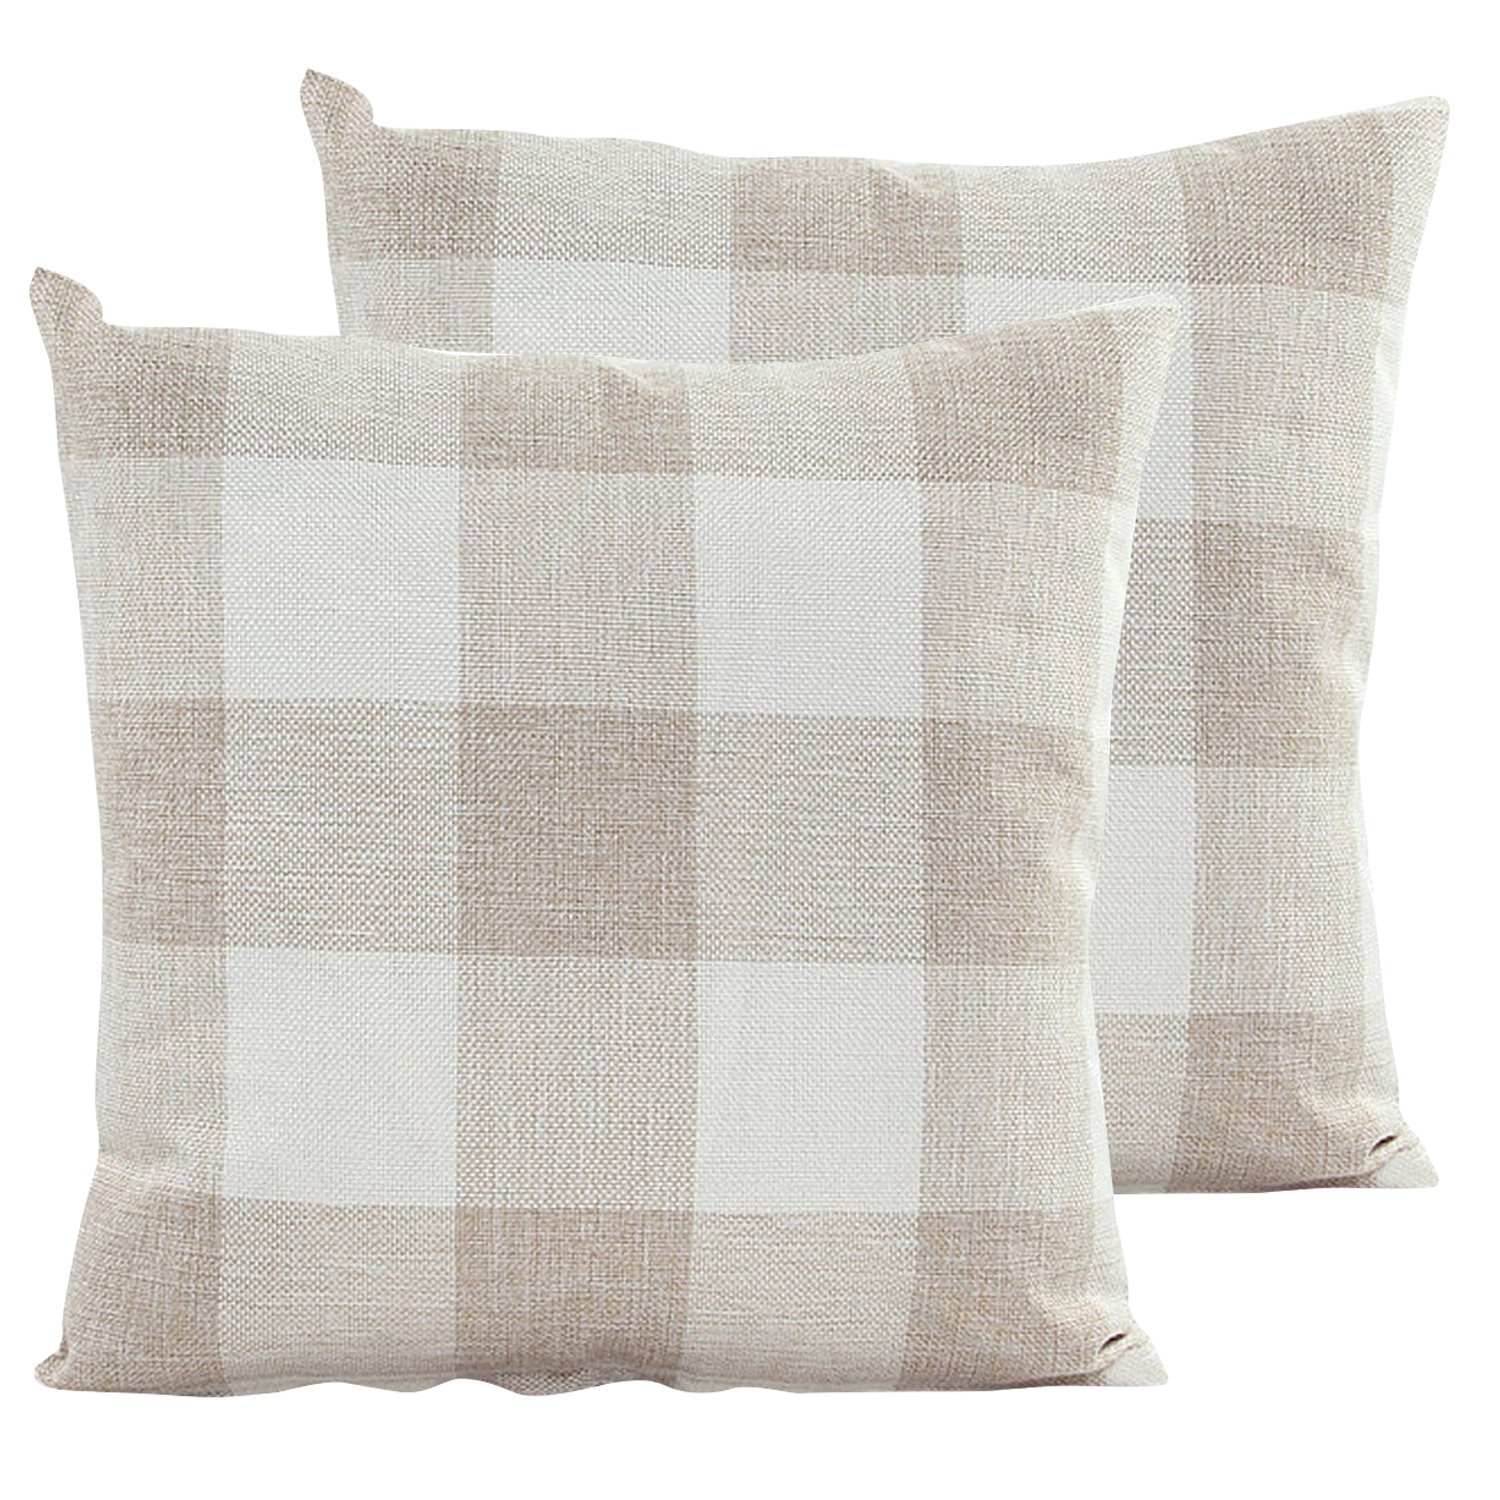 Cheap Sofa Pillow Covers 24x24 Find Sofa Pillow Covers 24x24 Deals On Line At Alibaba Com